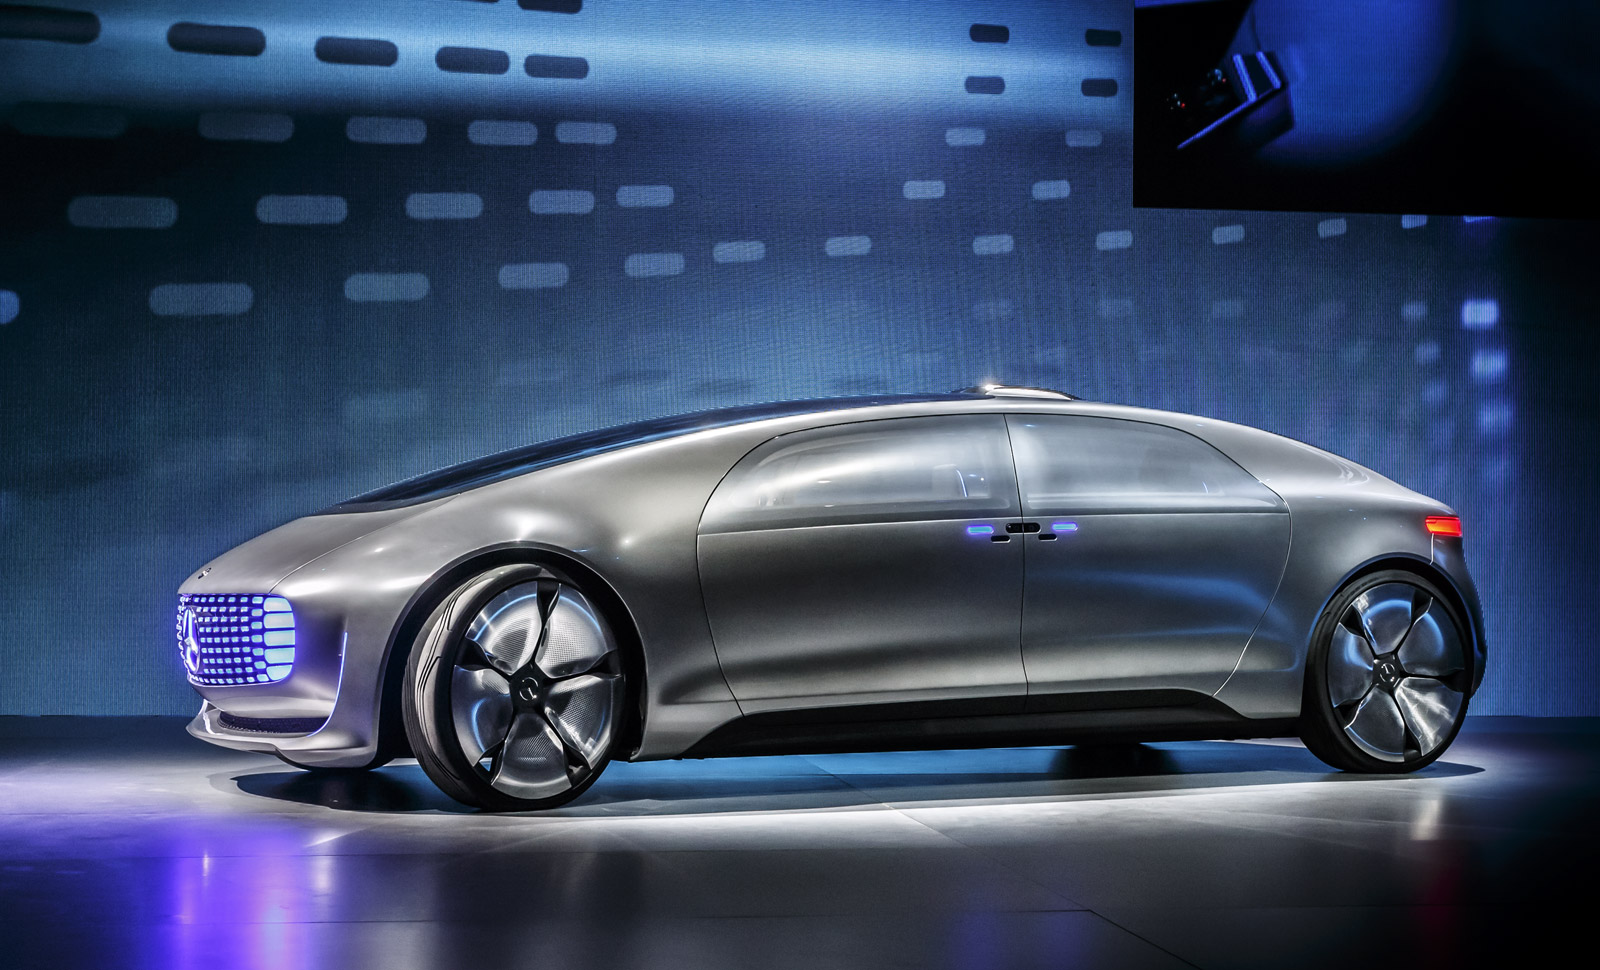 Mercedes Benz F015 Luxury In Motion Concept 2015 Consumer